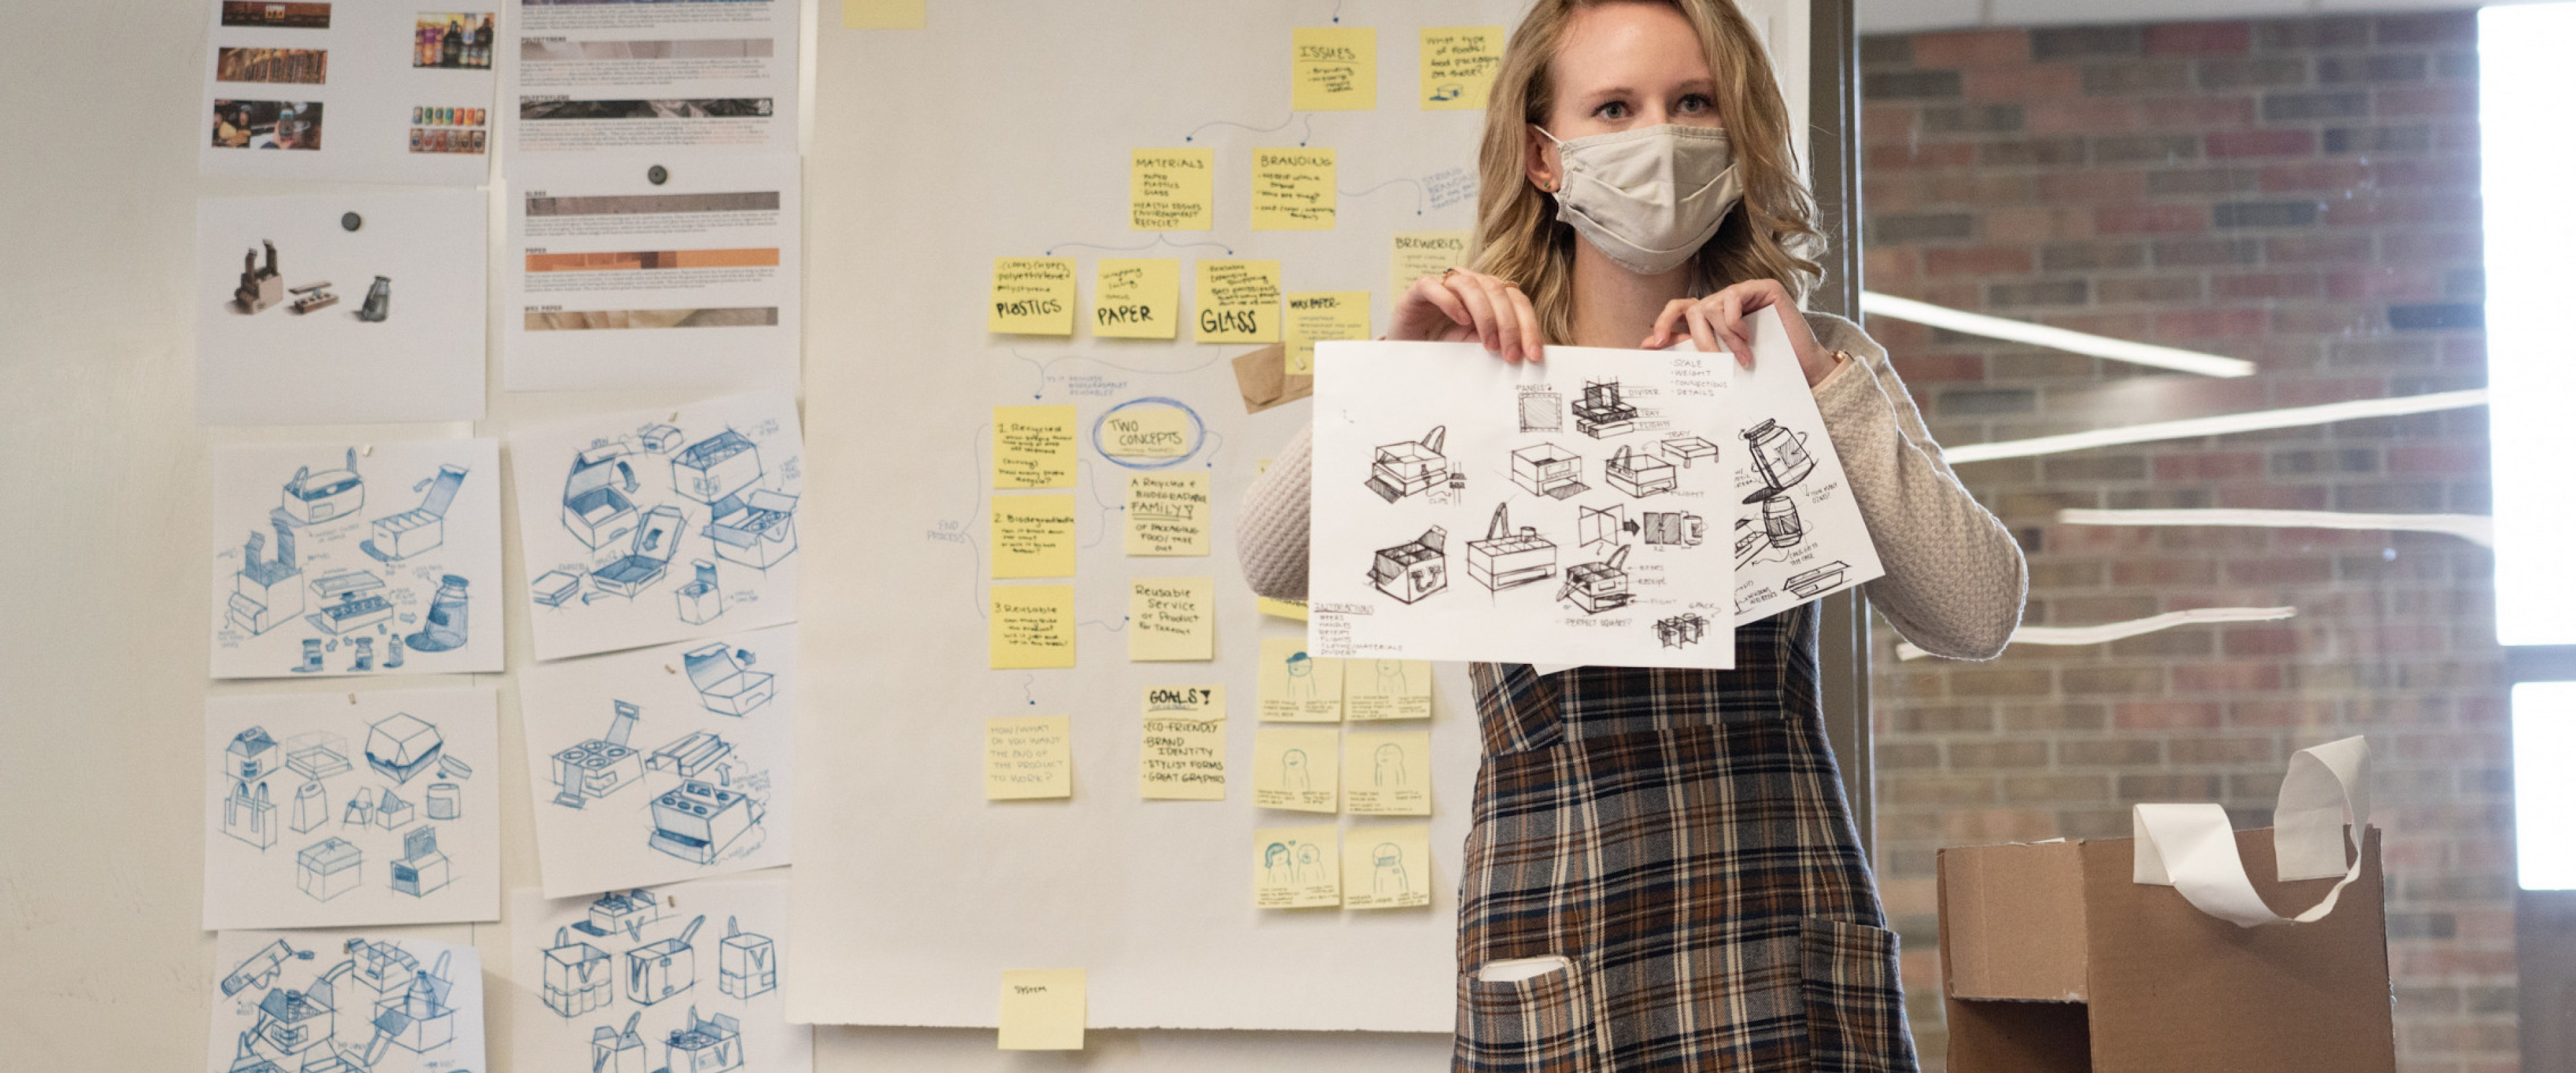 A product design student presents sketches to her class.